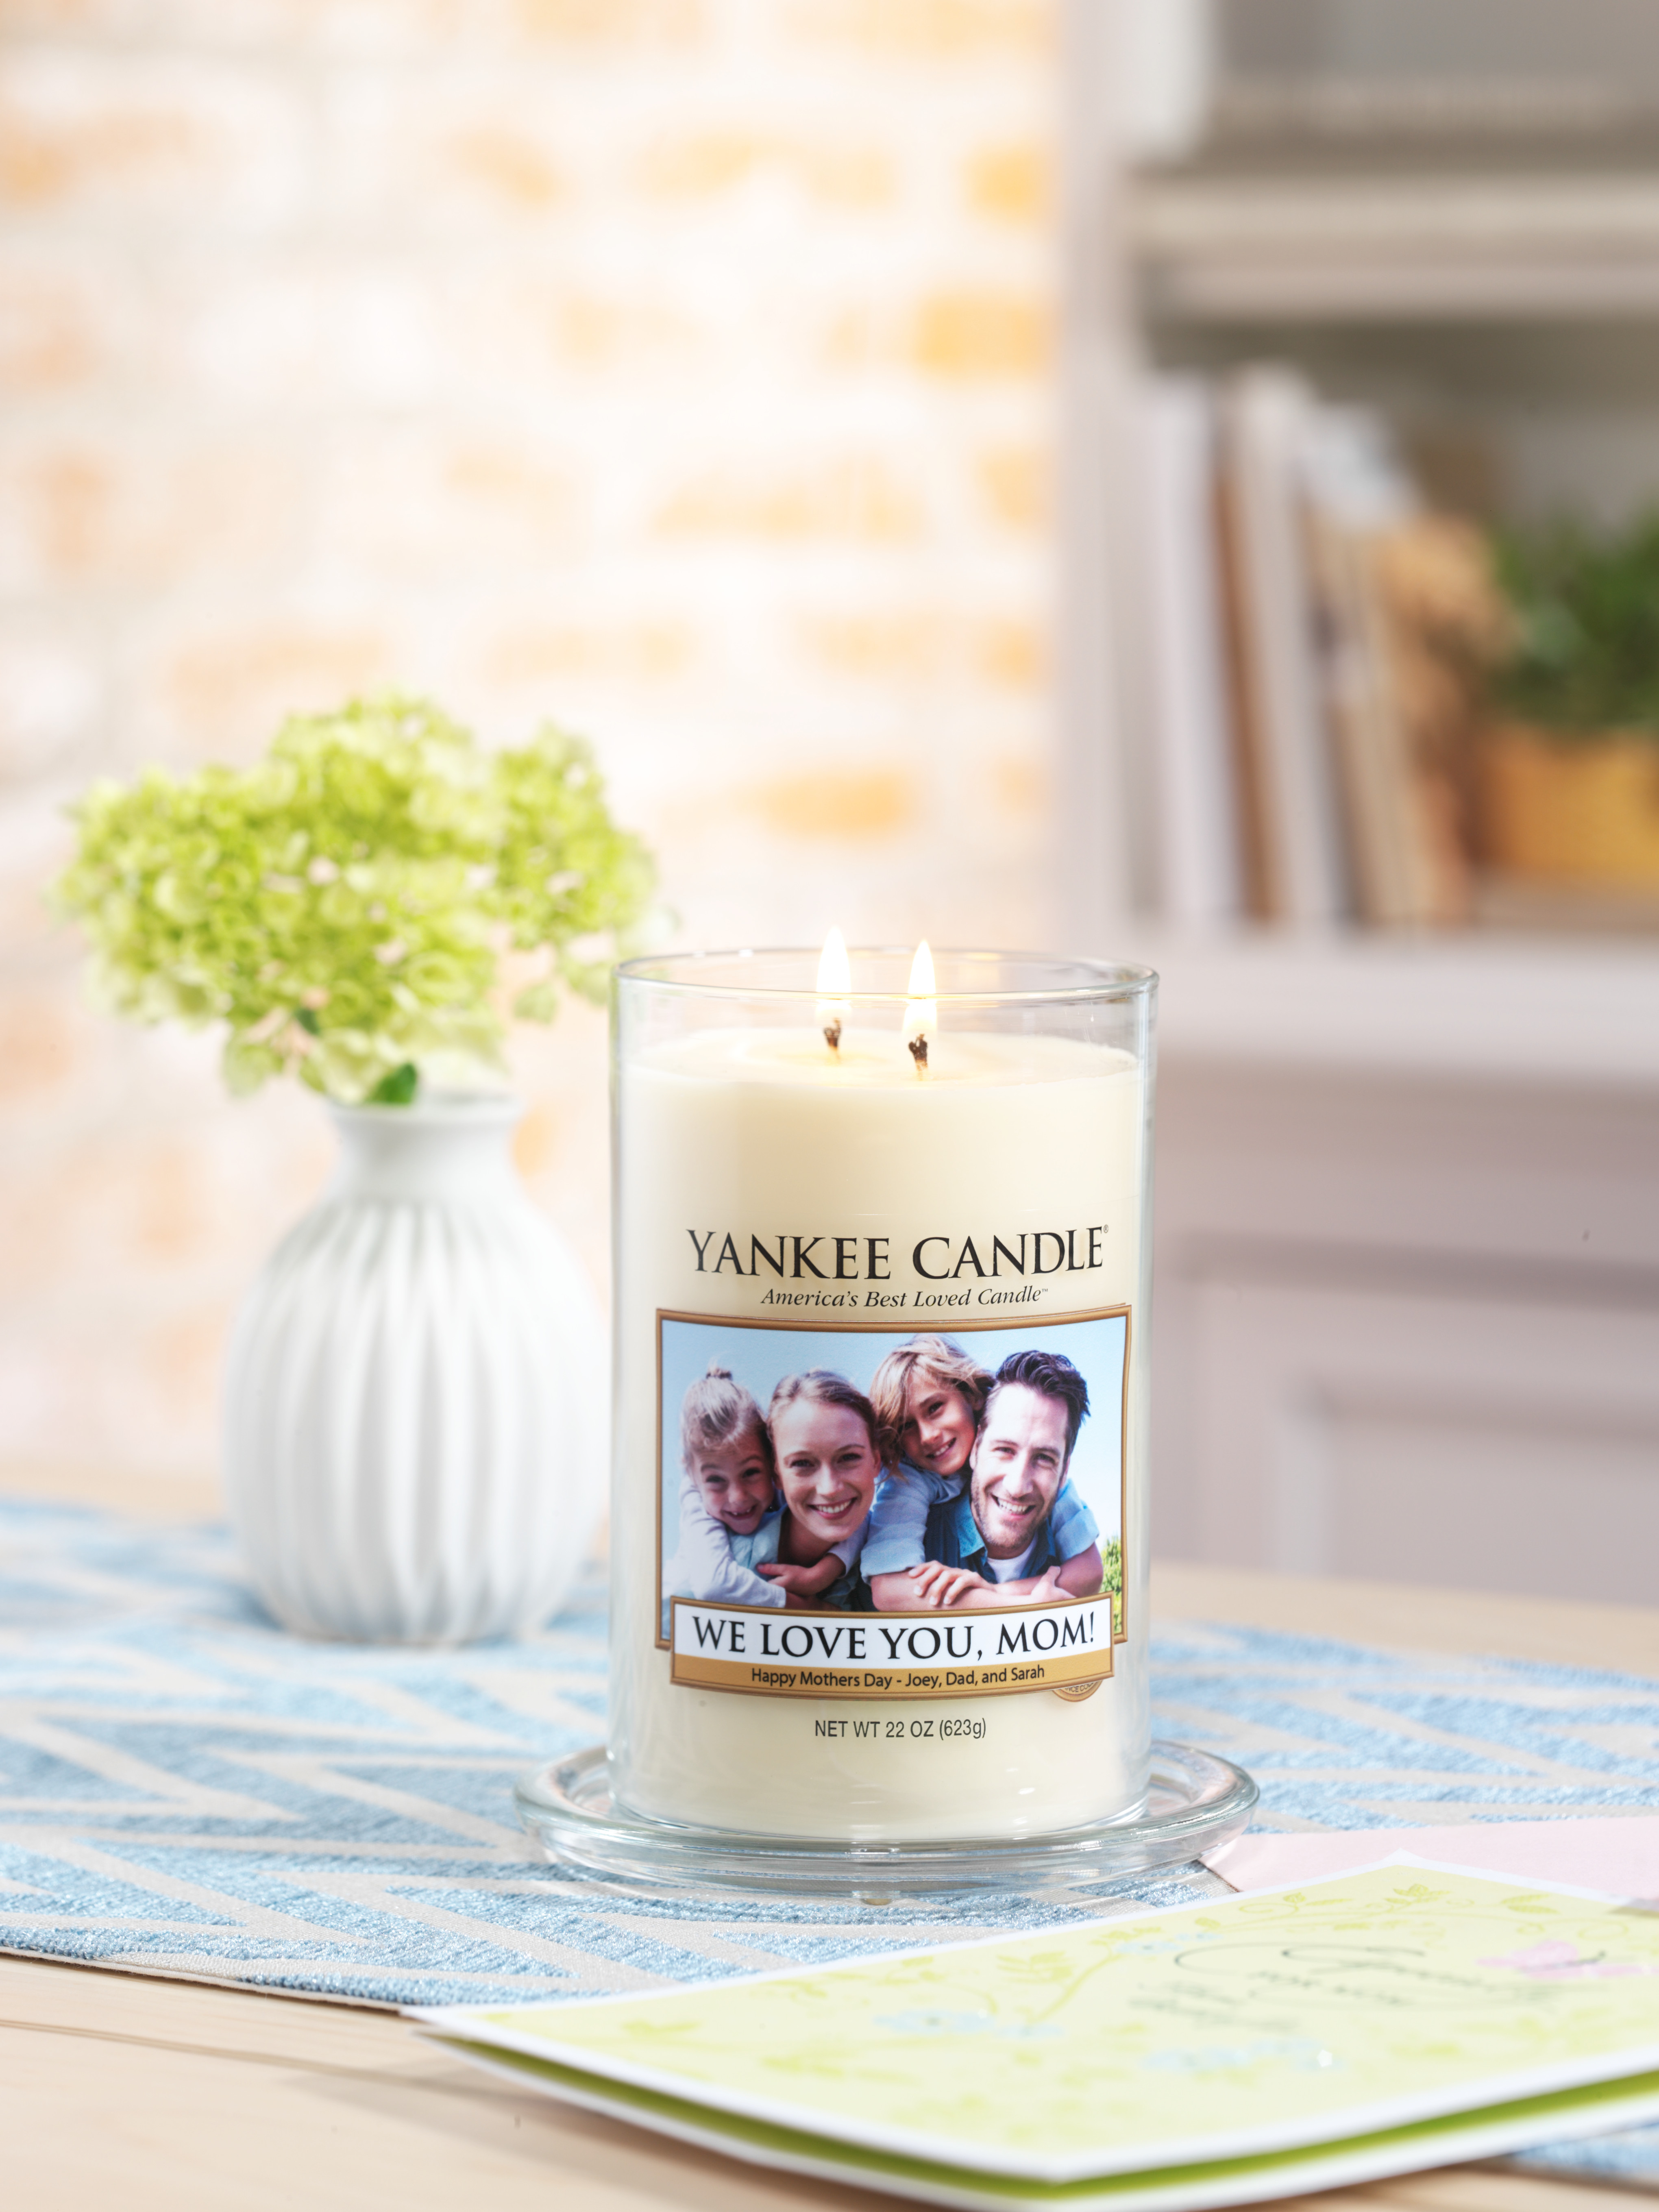 From Yankee Candle floral scents to Yankee Candle fresh scents, we have them all $50+ Orders Ship Free · Hassle-Free Returns · Free Store Pick-Up · Incredible SavingsProduct: Candle Sets, Candleholders, Jar Candles, Essential Oils & Diffusers and more.